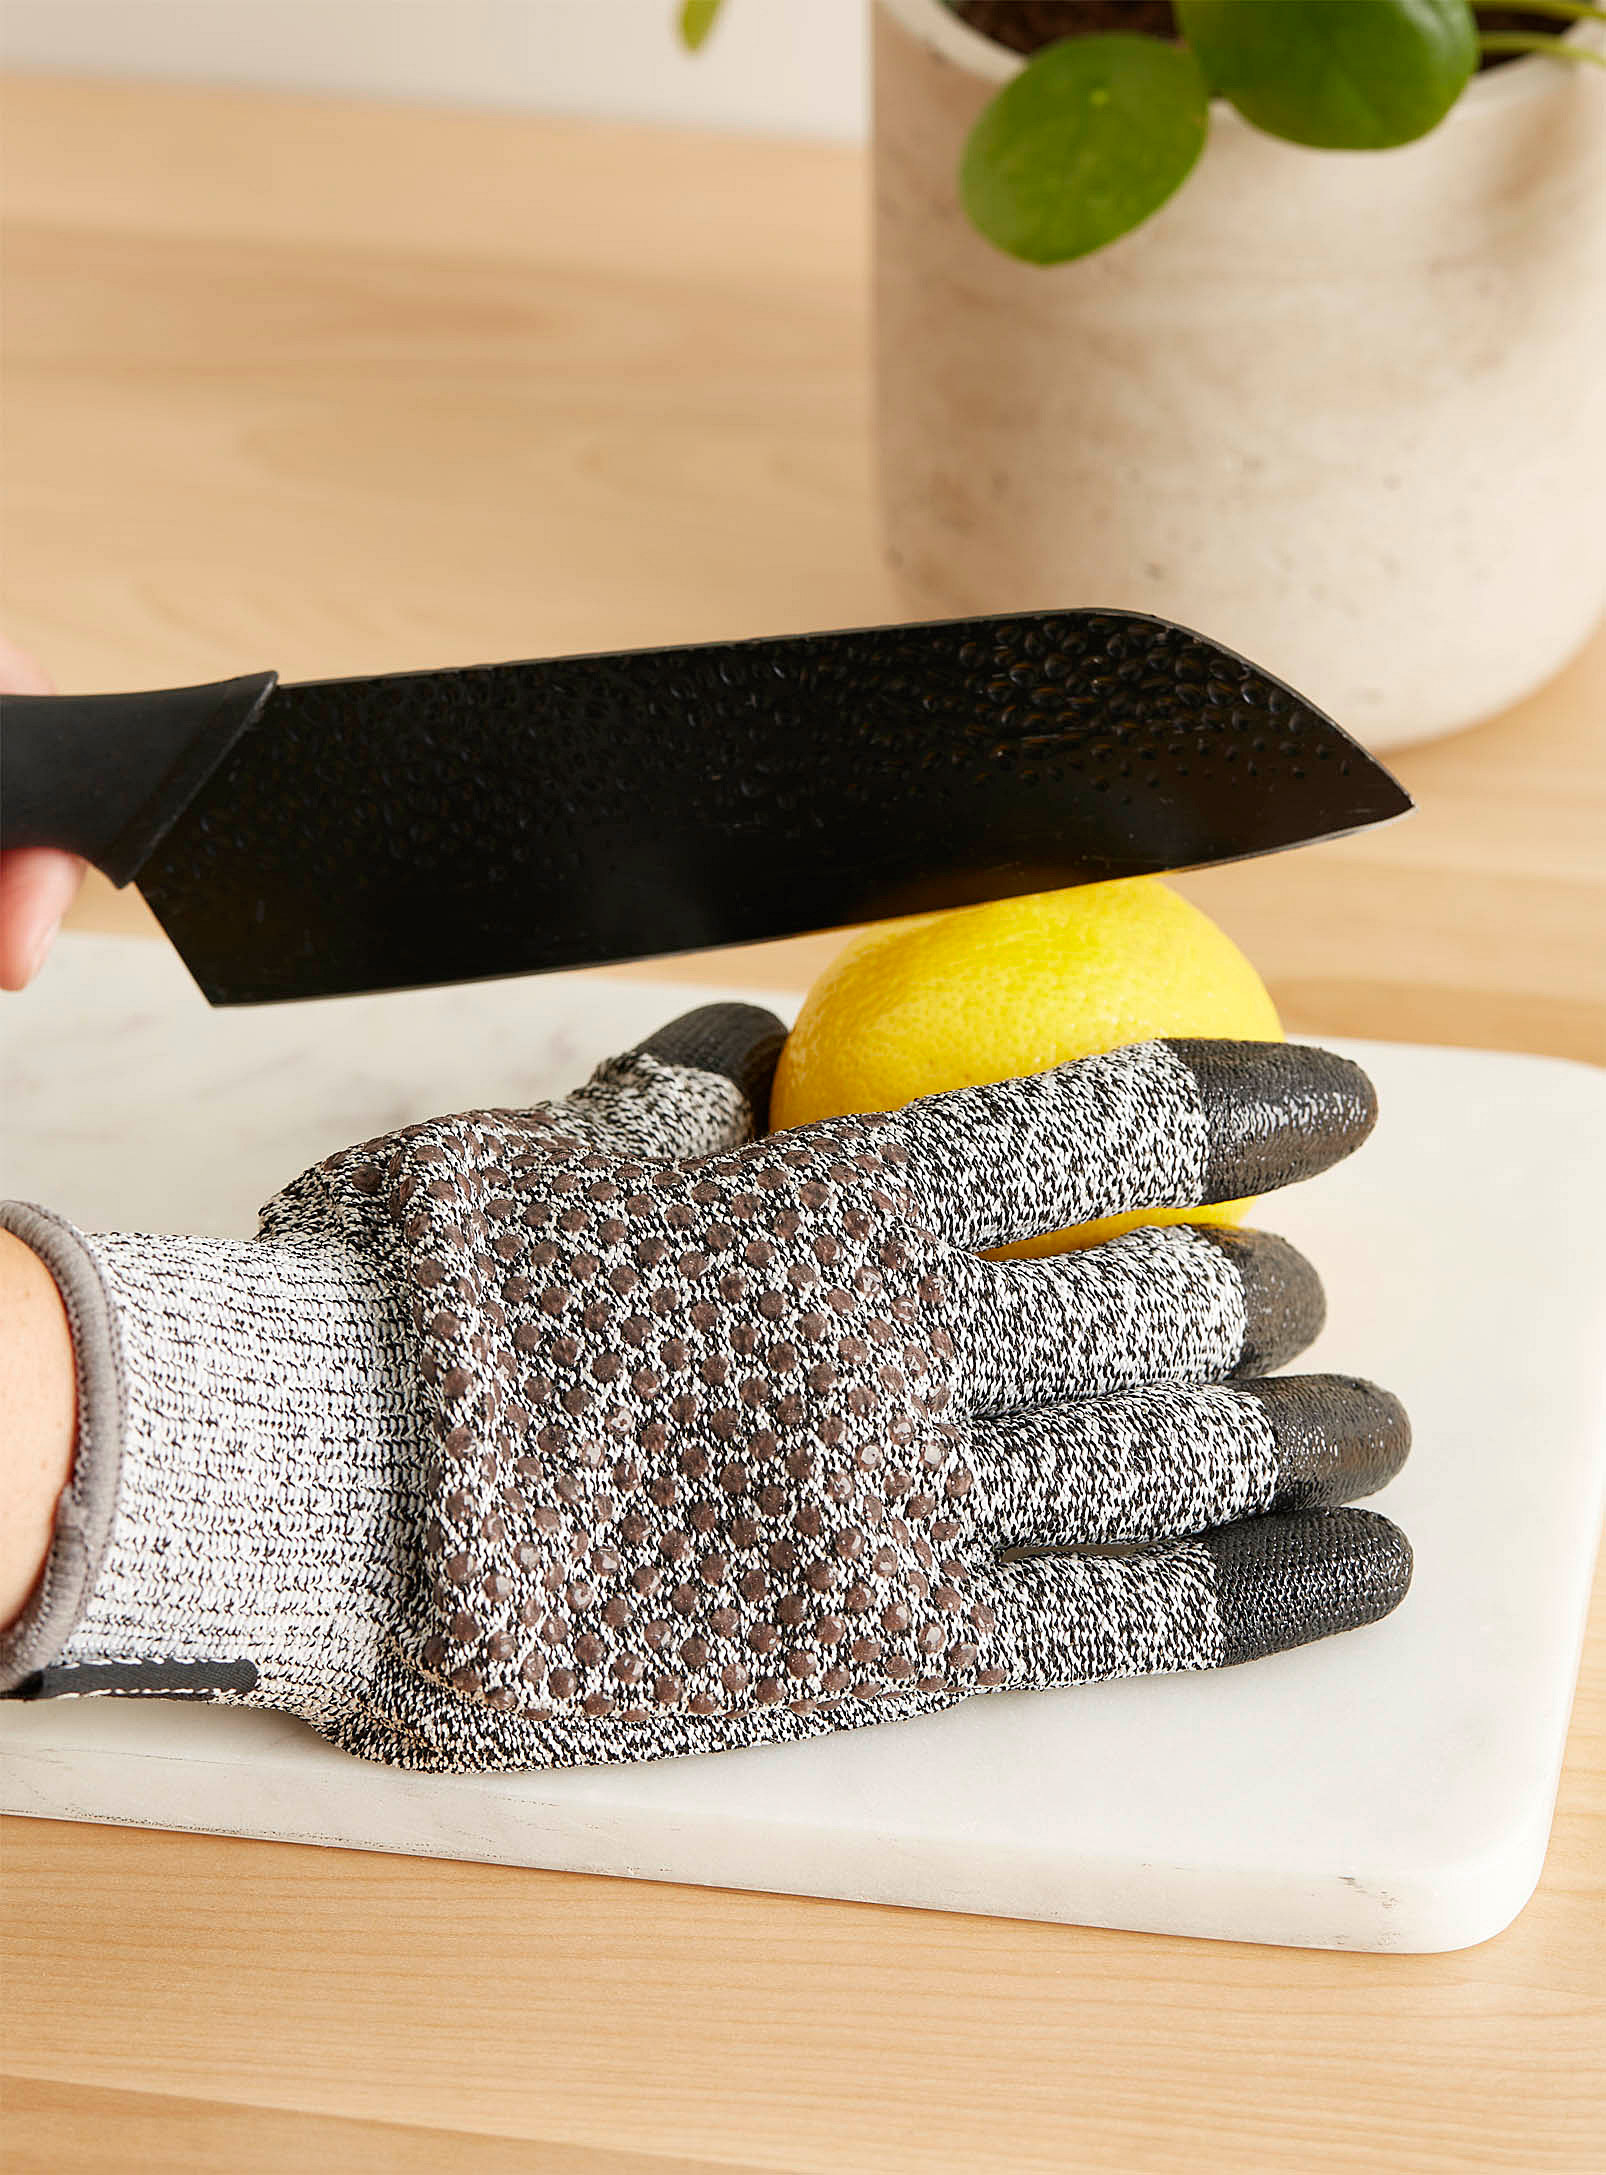 A person wearing a thick glove while cutting a lemon with a large knife